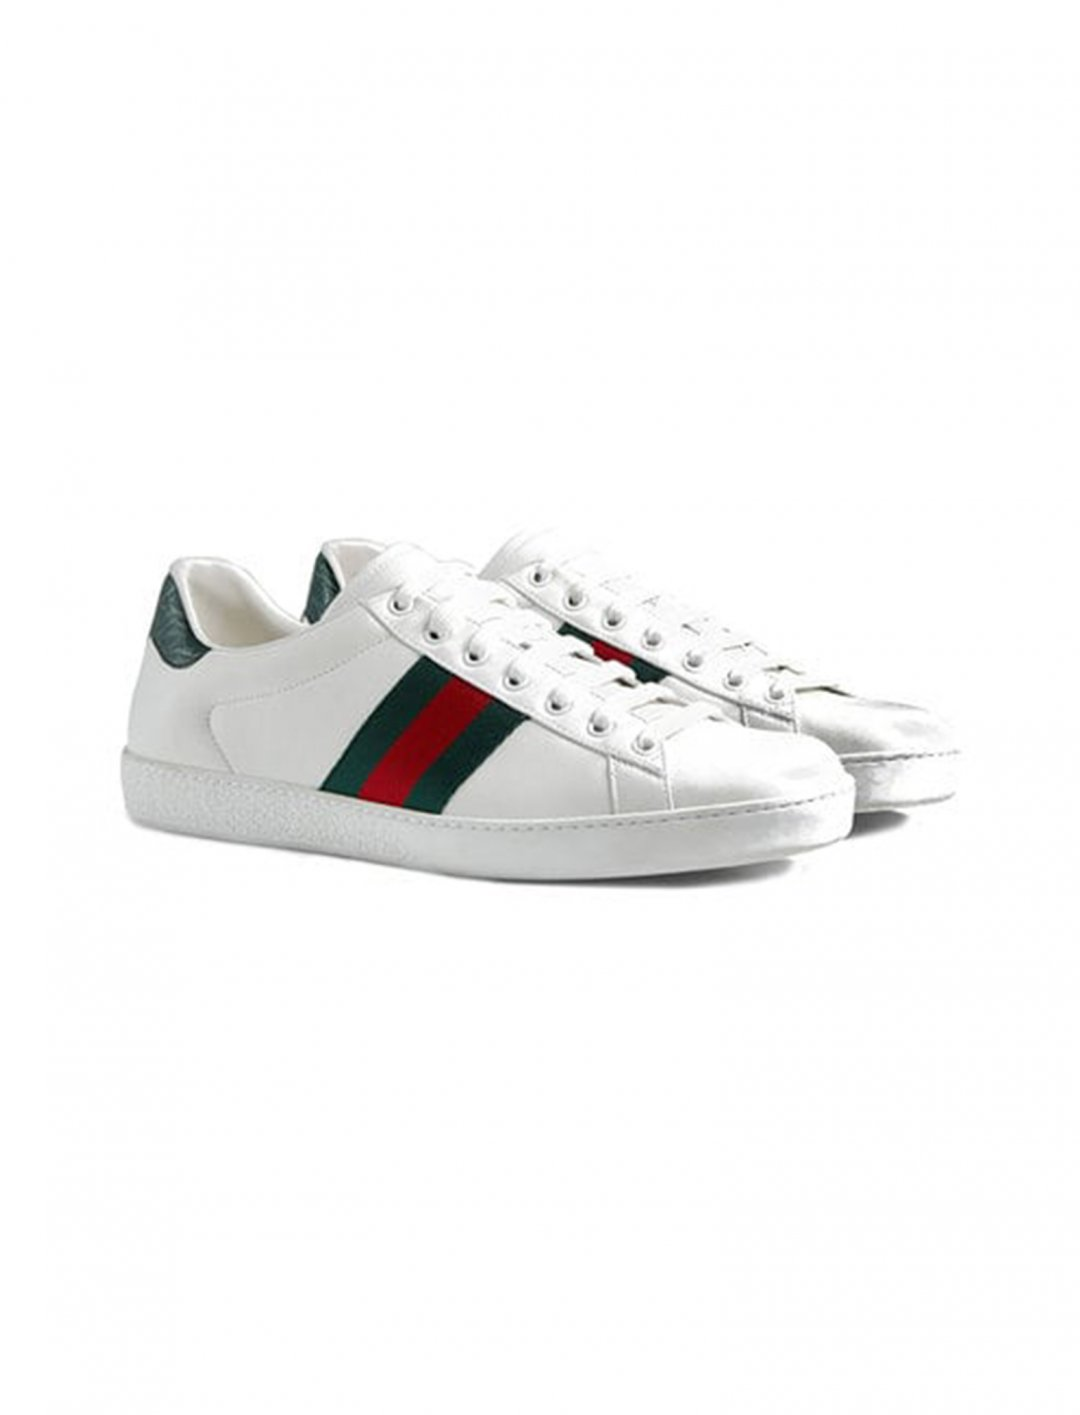 "French Montana's Sneakers {""id"":12,""product_section_id"":1,""name"":""Shoes"",""order"":12} Gucci"